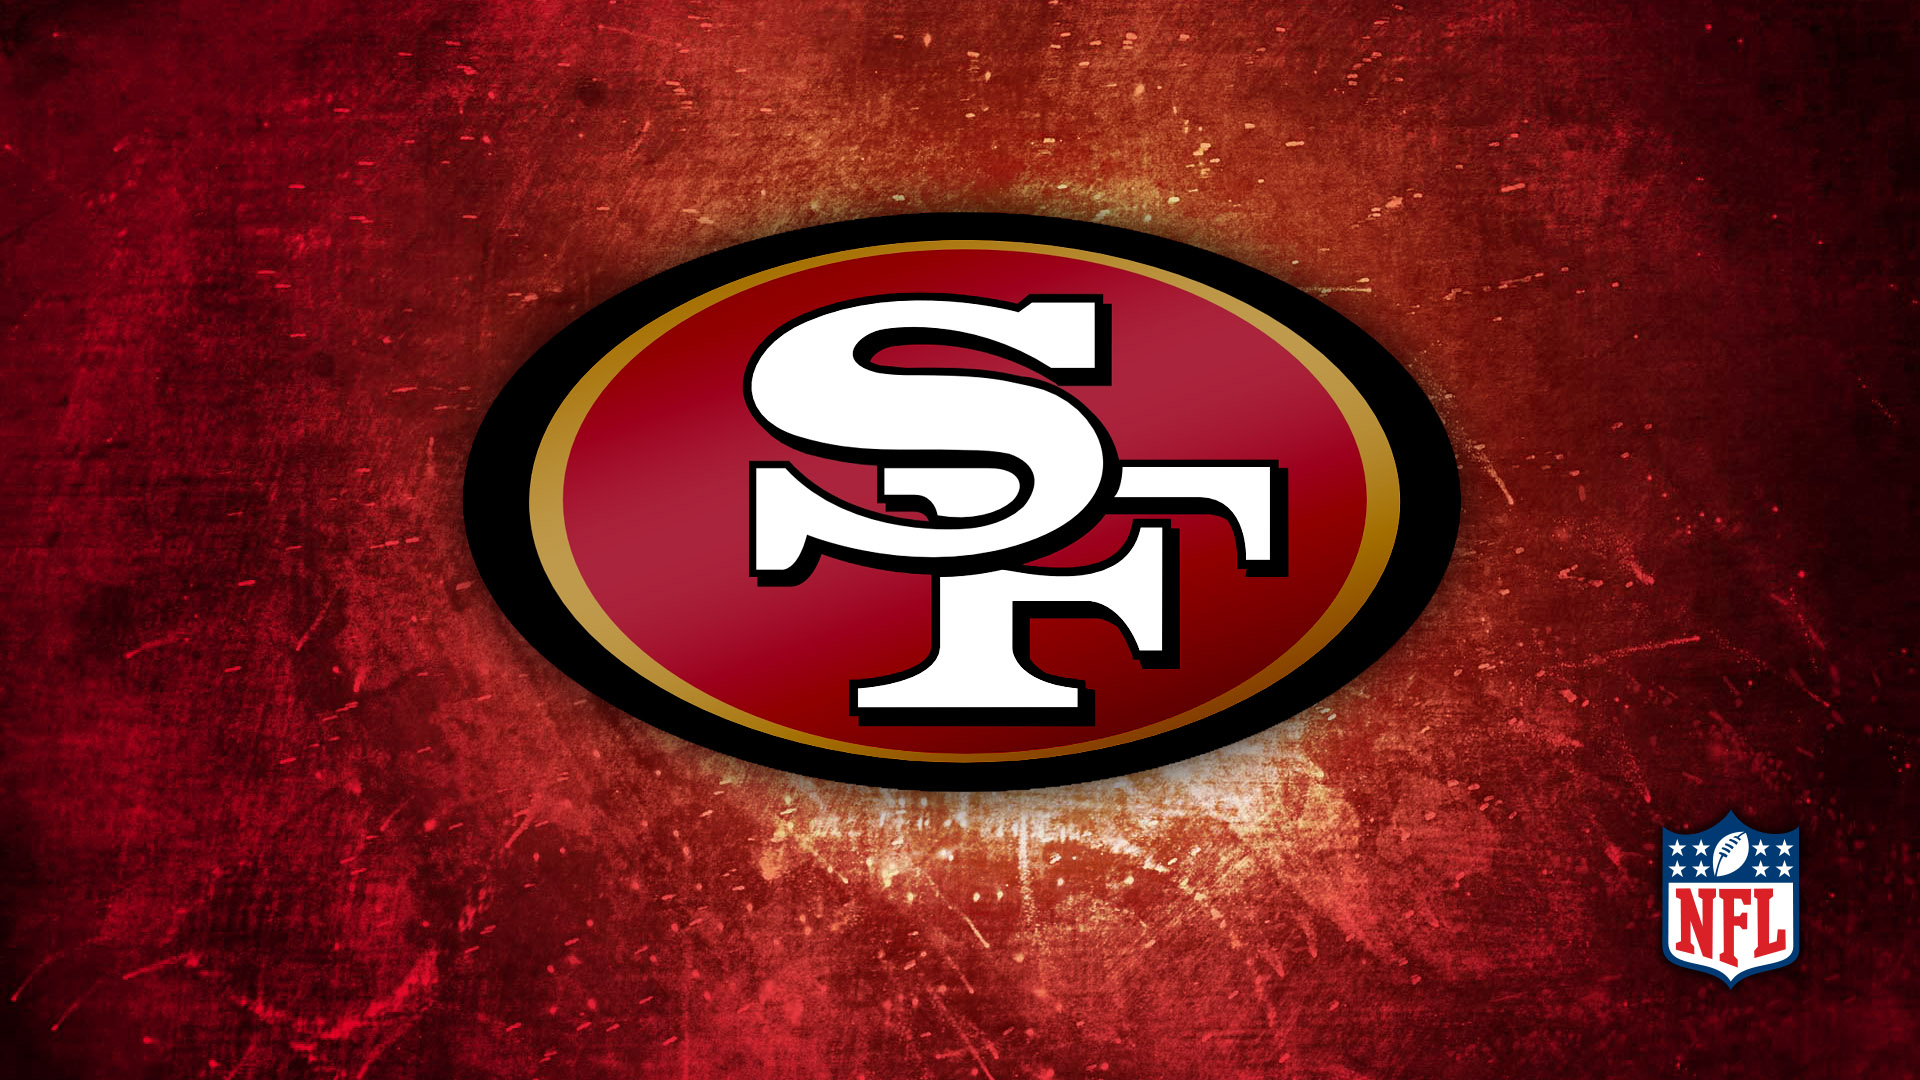 49ers Red Gold Logo 1920x1080 HD Image Sports NFL Football 1920x1080